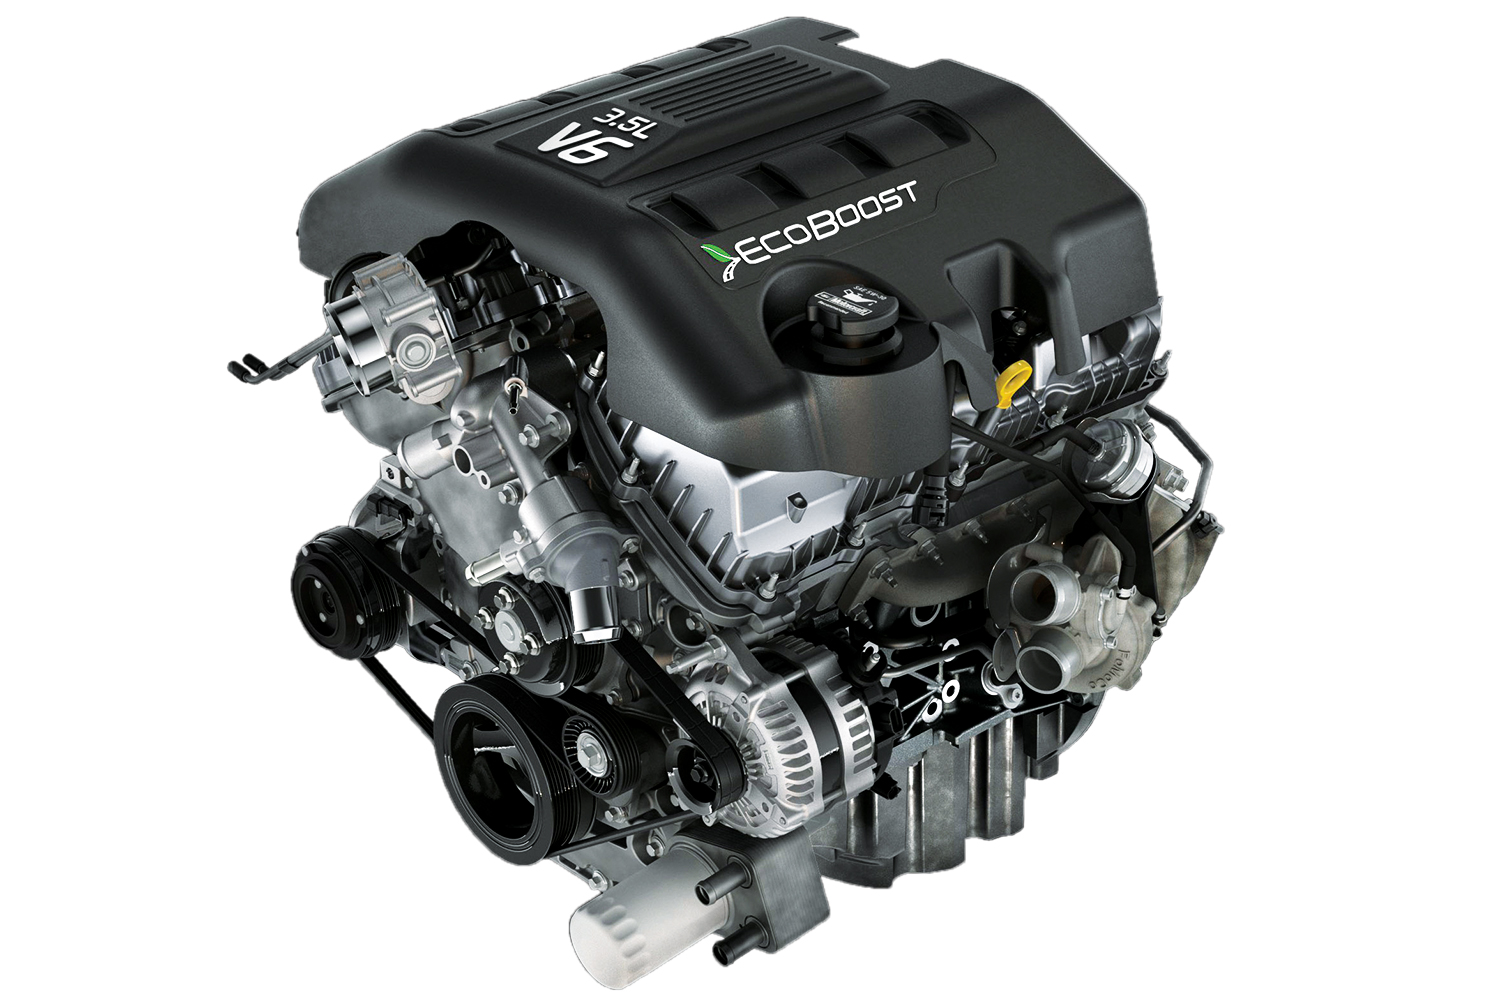 ecoboost 101 a quick guide to upgrading your ford ecoboost engine onallcylinders 2002 Ford Taurus 3.0 Engine Ford 3.0 V6 Engine Diagram